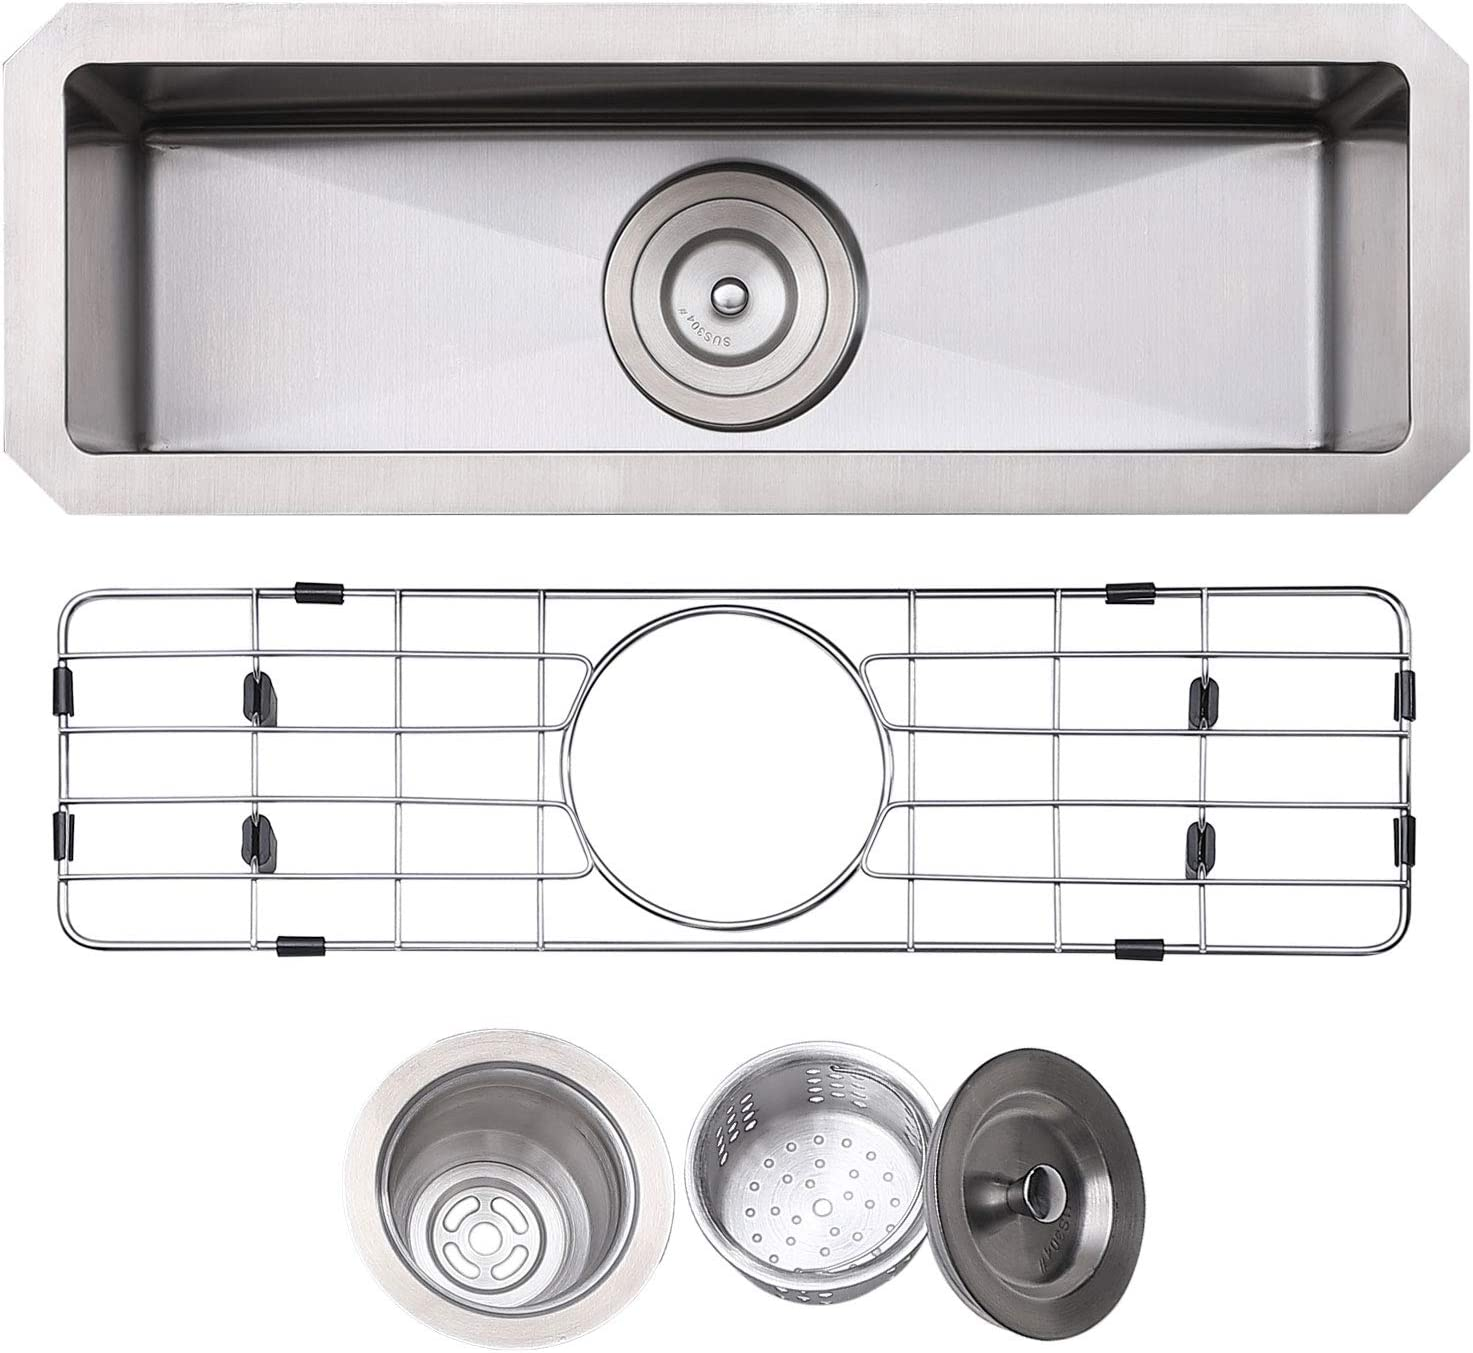 KINGO HOME 23 Inch Stainless Steel Topmount Drop-In Small Kitchen Bar Sink, Single Basin Sink for Wet Bar Prep RV Yard Office Laundry Utility with Dish Grid & Drain